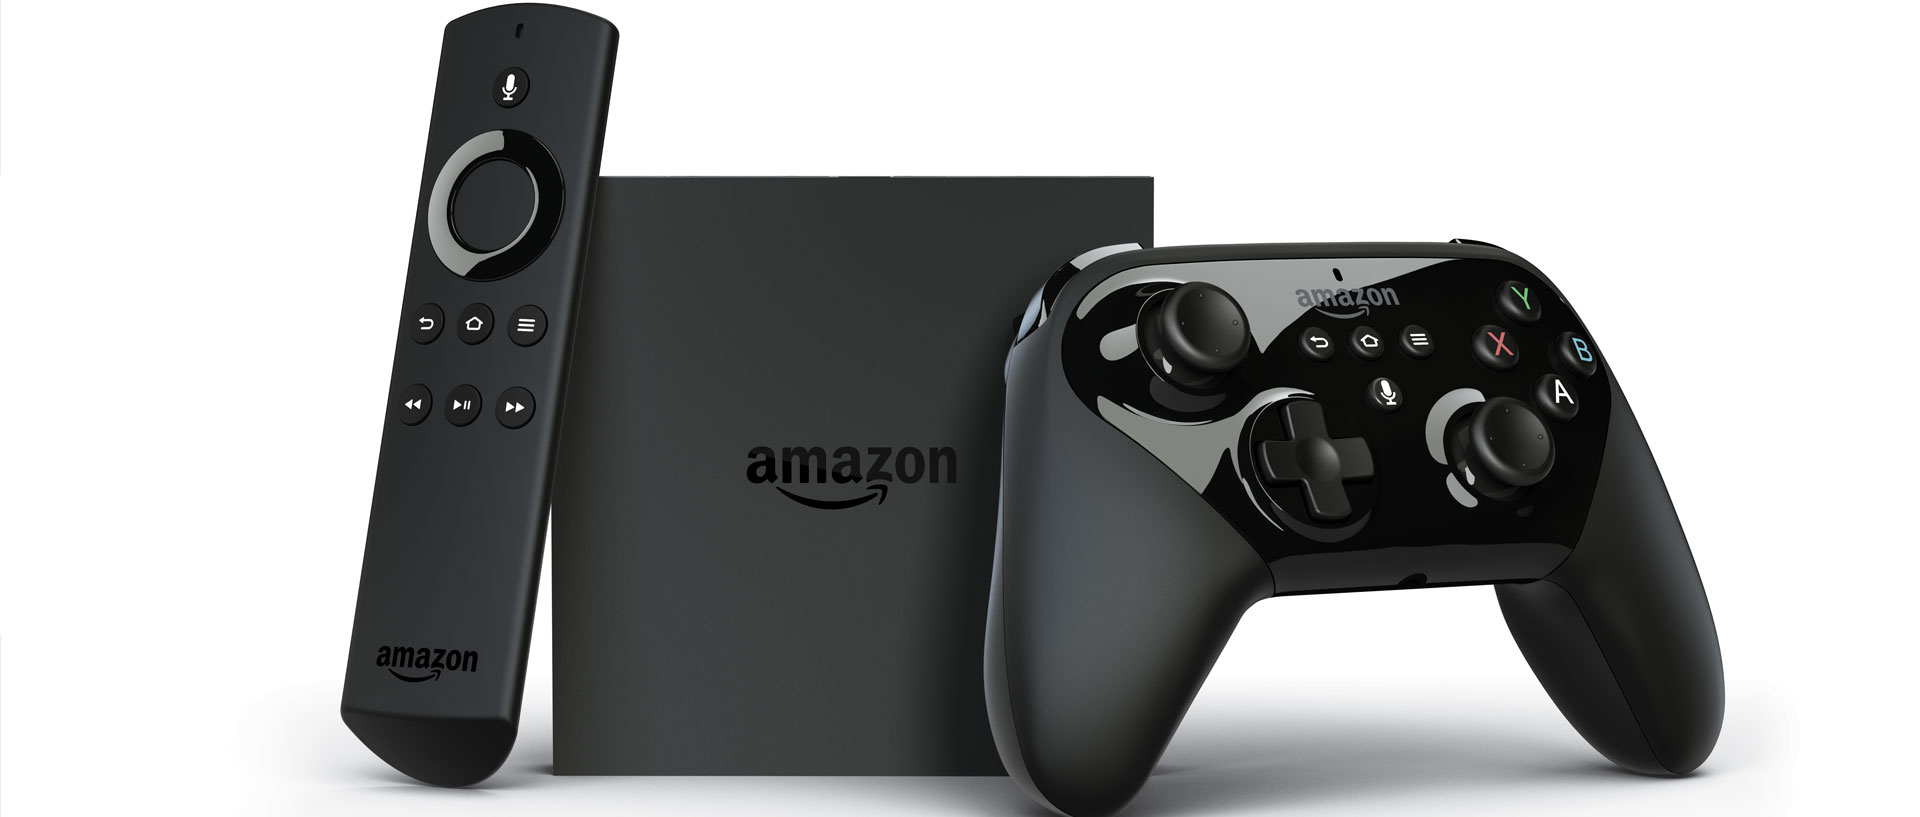 Used Car Batteries >> Amazon Fire TV Review - Consumer Reports